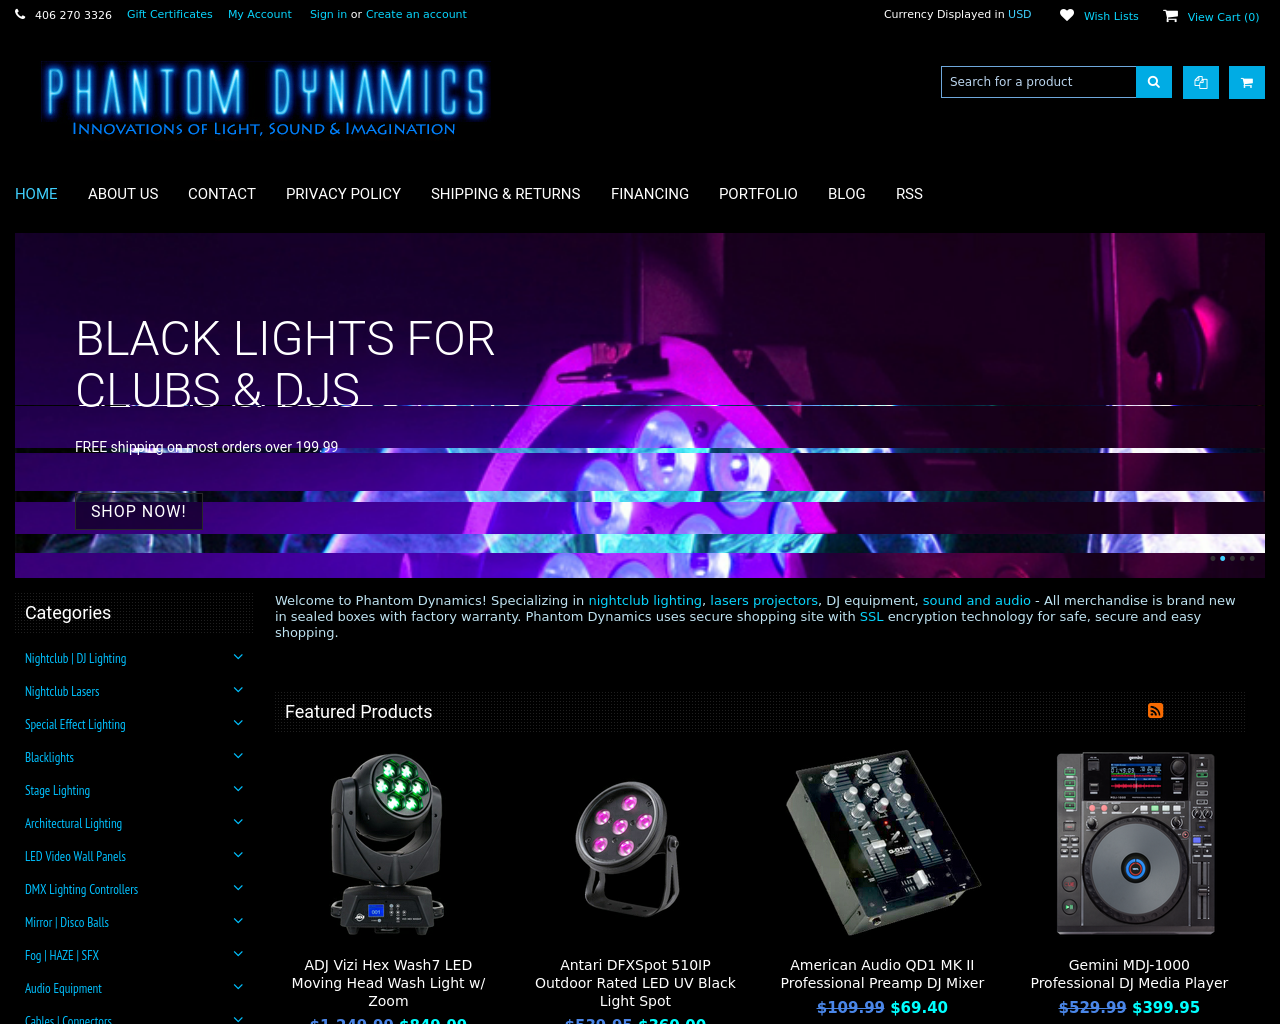 Phantom-Dynamics-Advertising-Reviews-Pricing